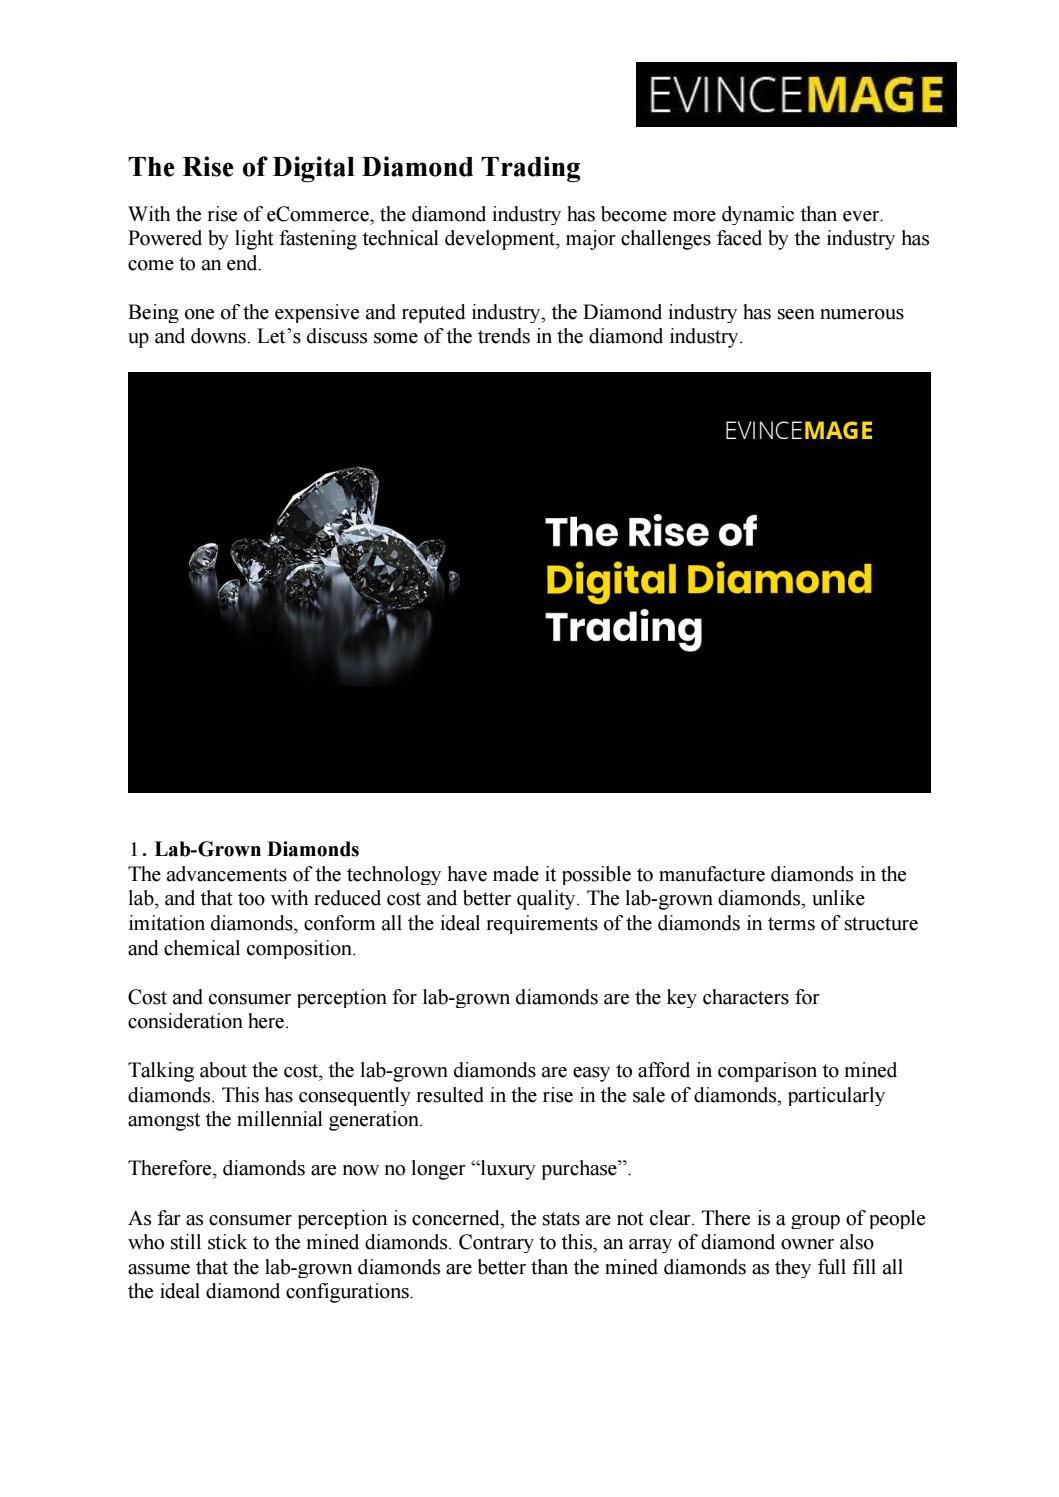 The Rise of Digital Diamond Trading by Evince Development